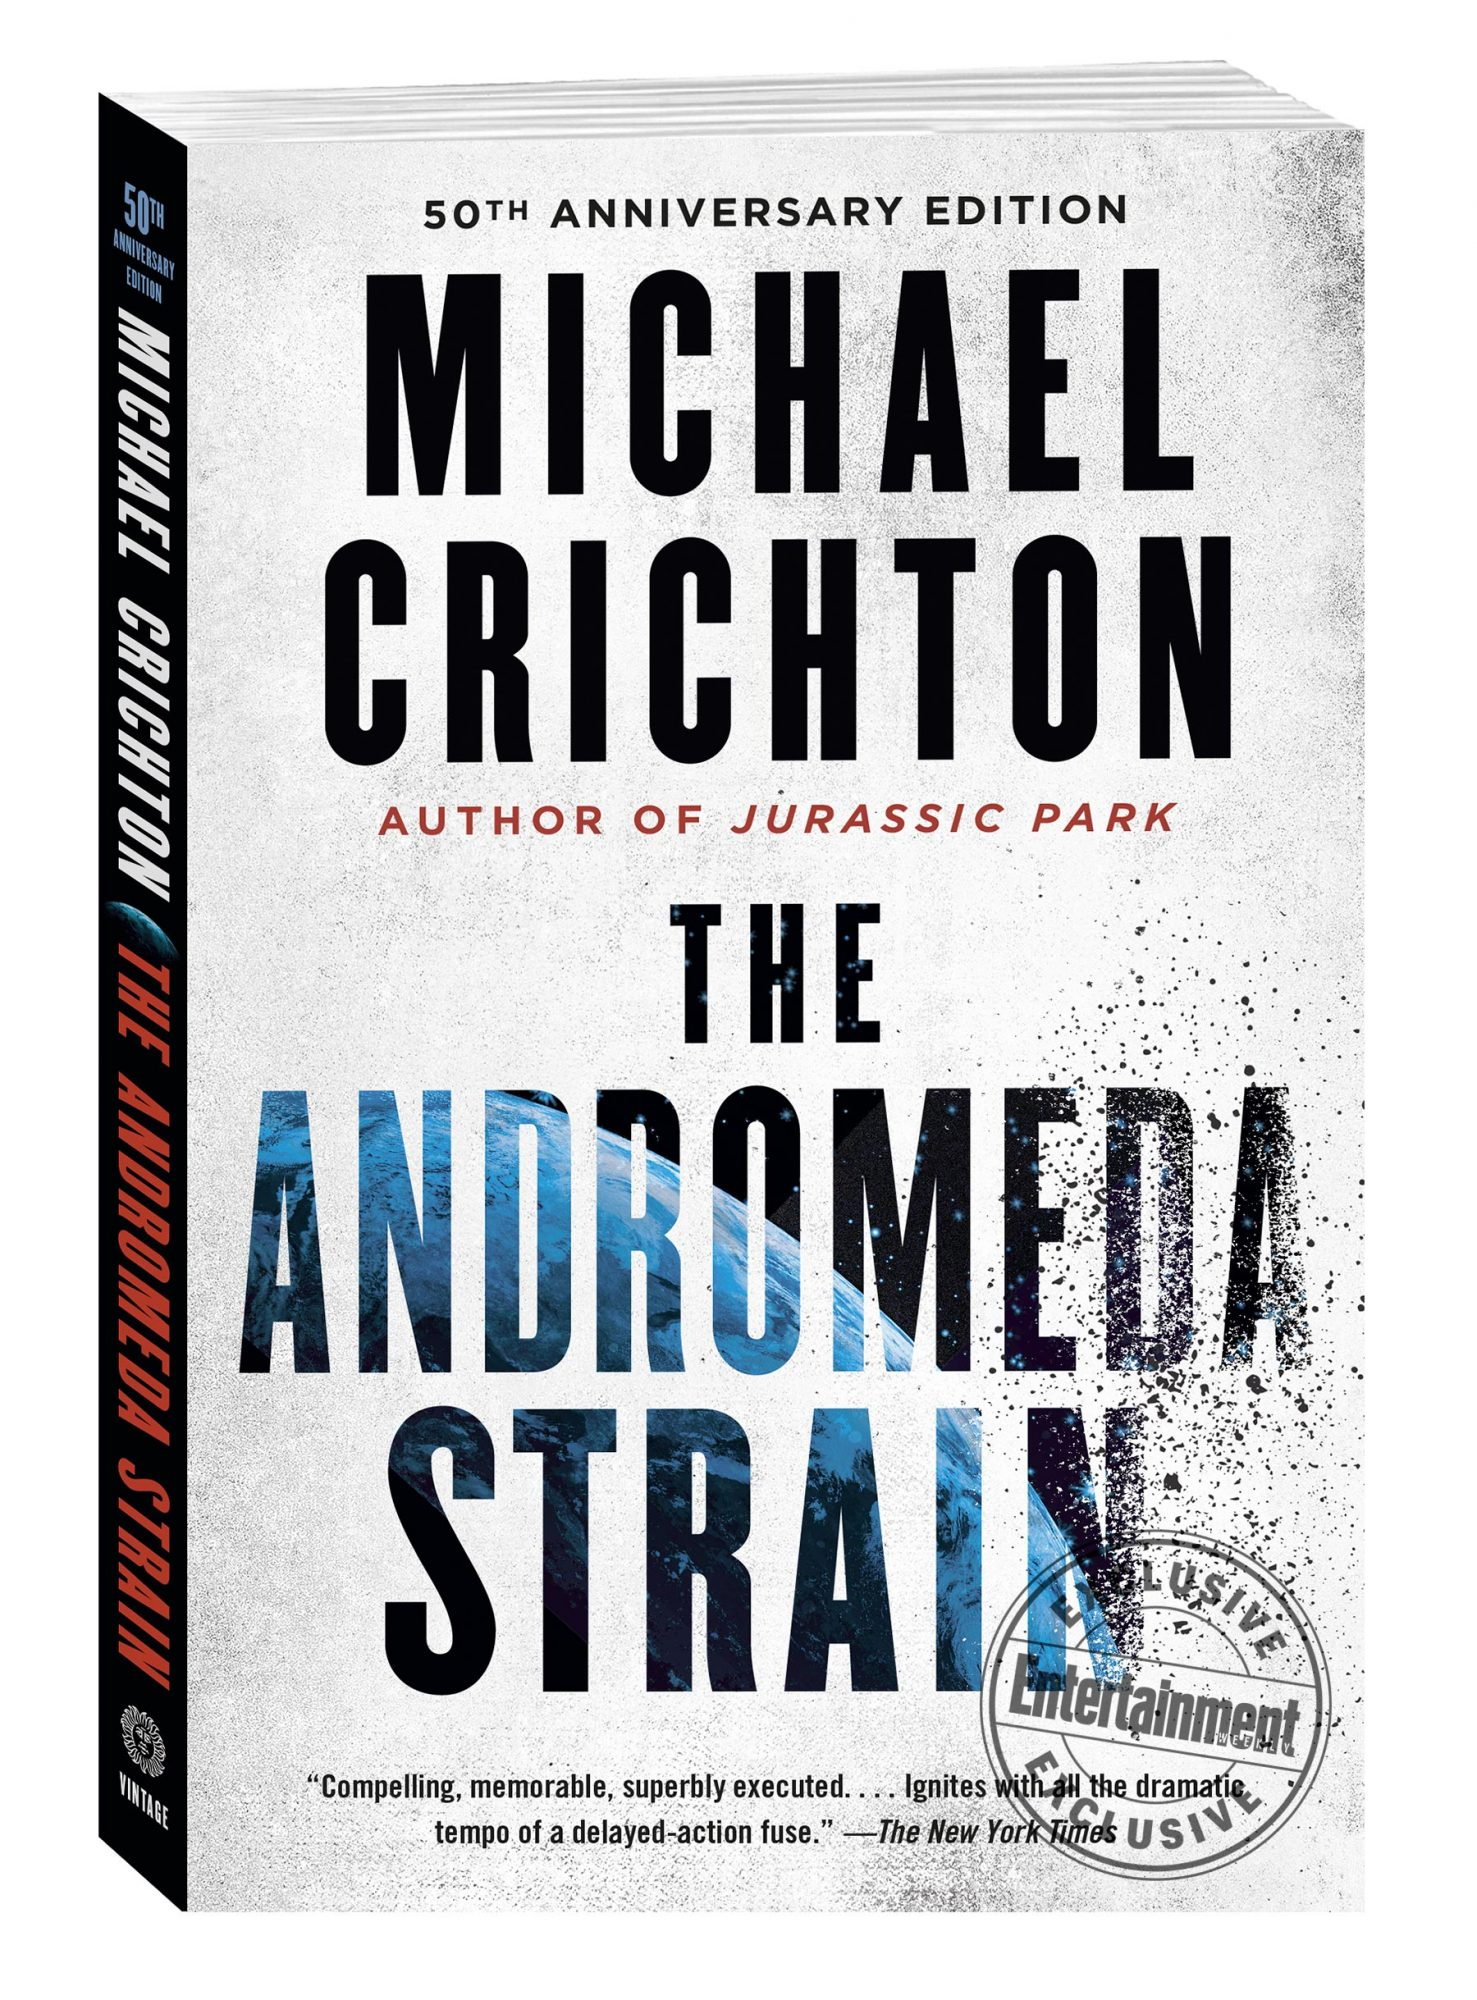 The Andromeda Strain 50th anniversary edition by Michael Crichton